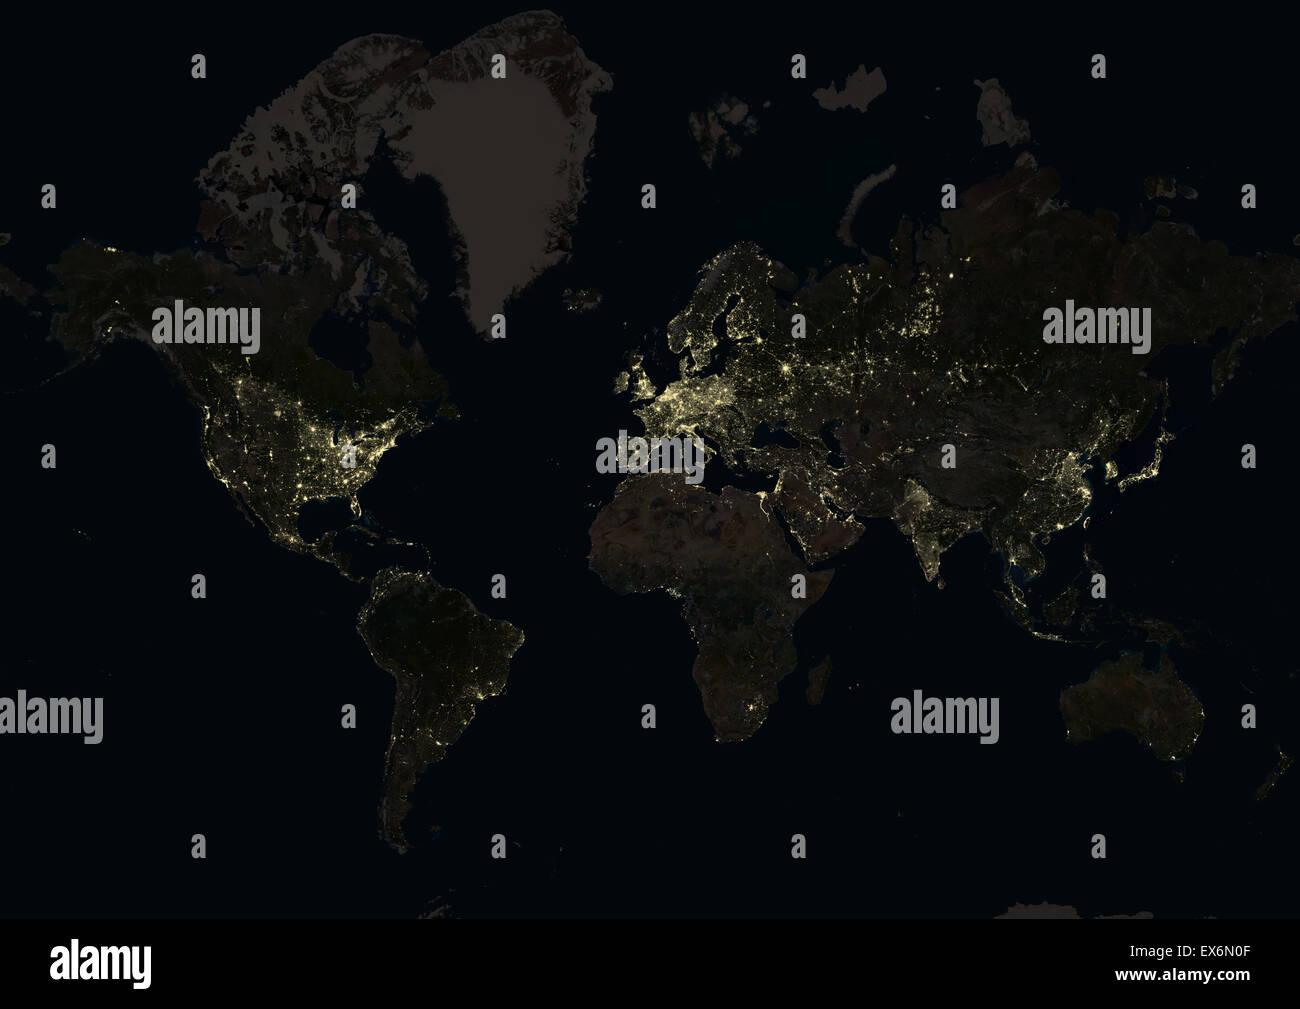 World At Night In 2012 Showing A World Map In Mercator Projection